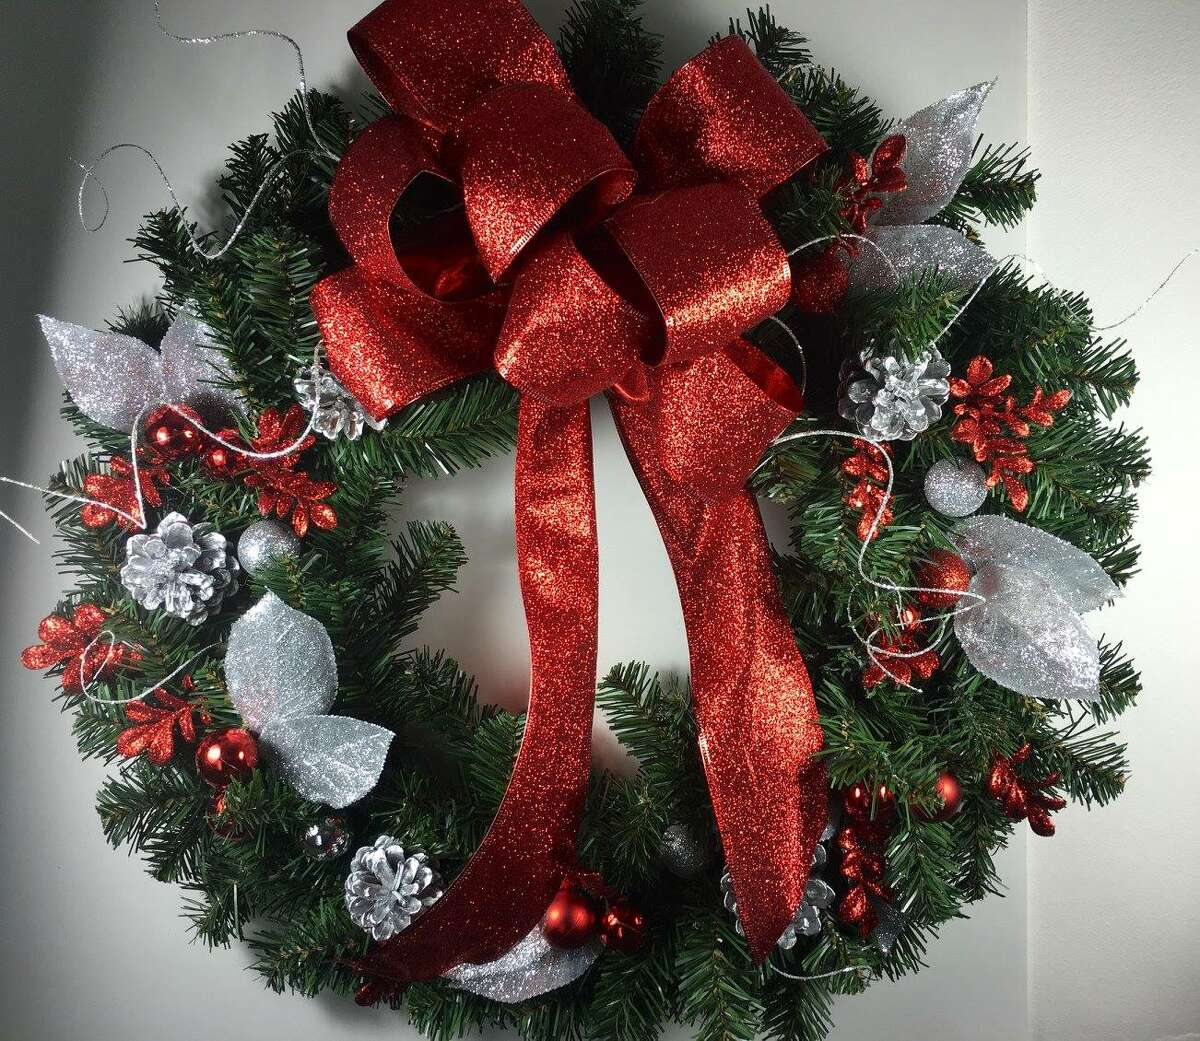 Send in your 2017 Circles of Caring wreaths! 2016 Circles of Caring Adult Division Runner-up: Rylee Servis, Clifton Park ORG XMIT: 81OIa4FaRK_m_RTF2dkq